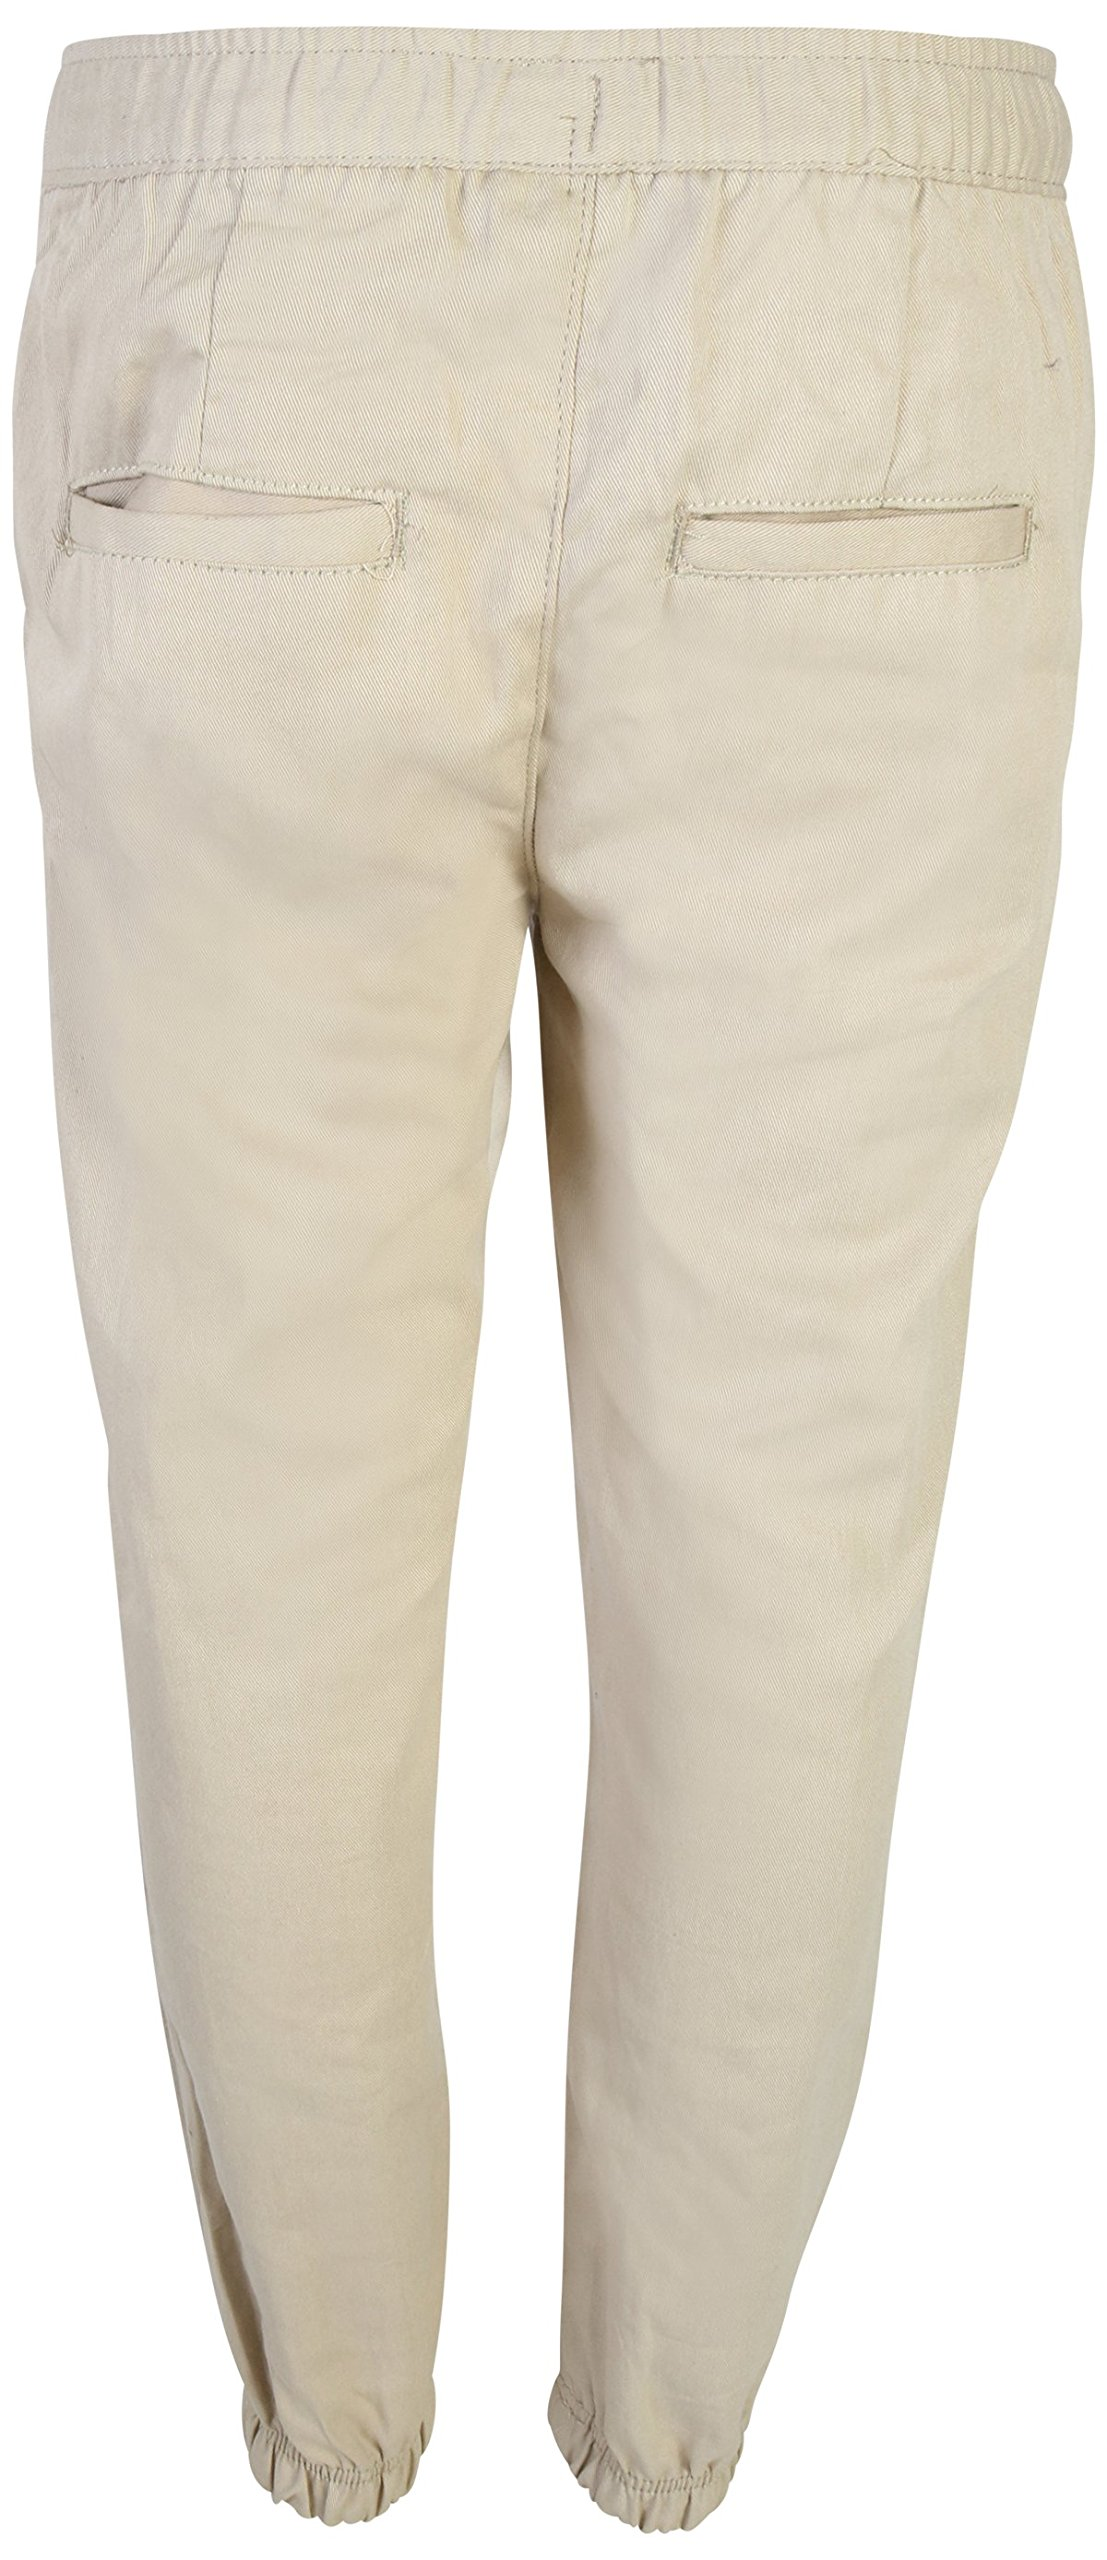 Beverly Hills Polo Club Boys School Uniform 2 Pack Twill Pull-On Jogger Pant with Adjustable Waist, Khaki, 14' by Beverly Hills Polo Club (Image #6)